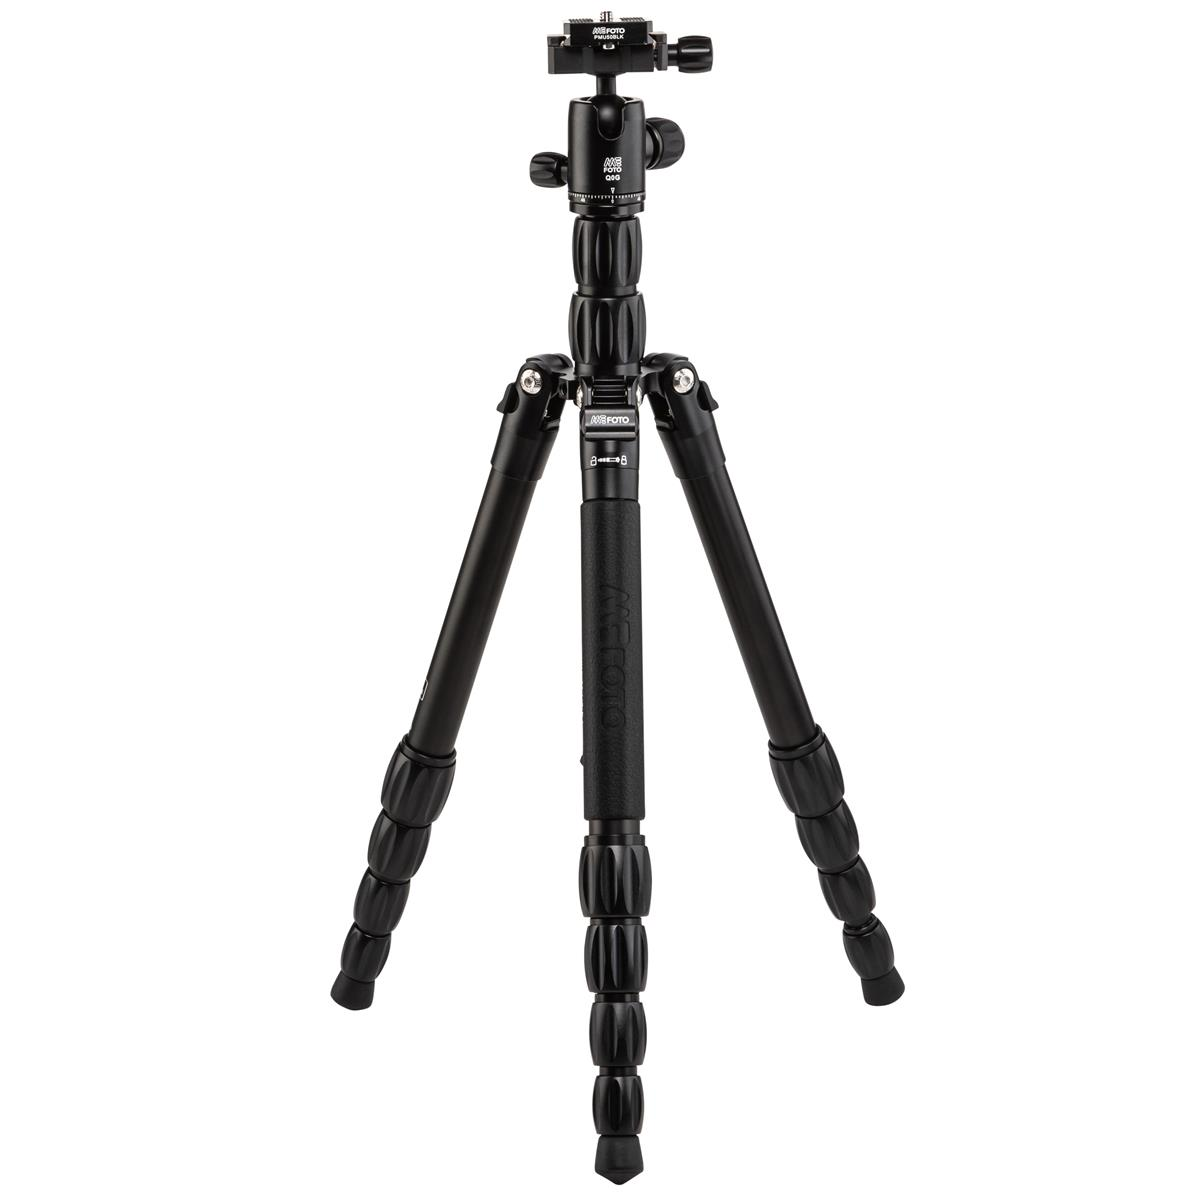 MeFOTO BackPacker S Travel Tripod (Black Aluminum)